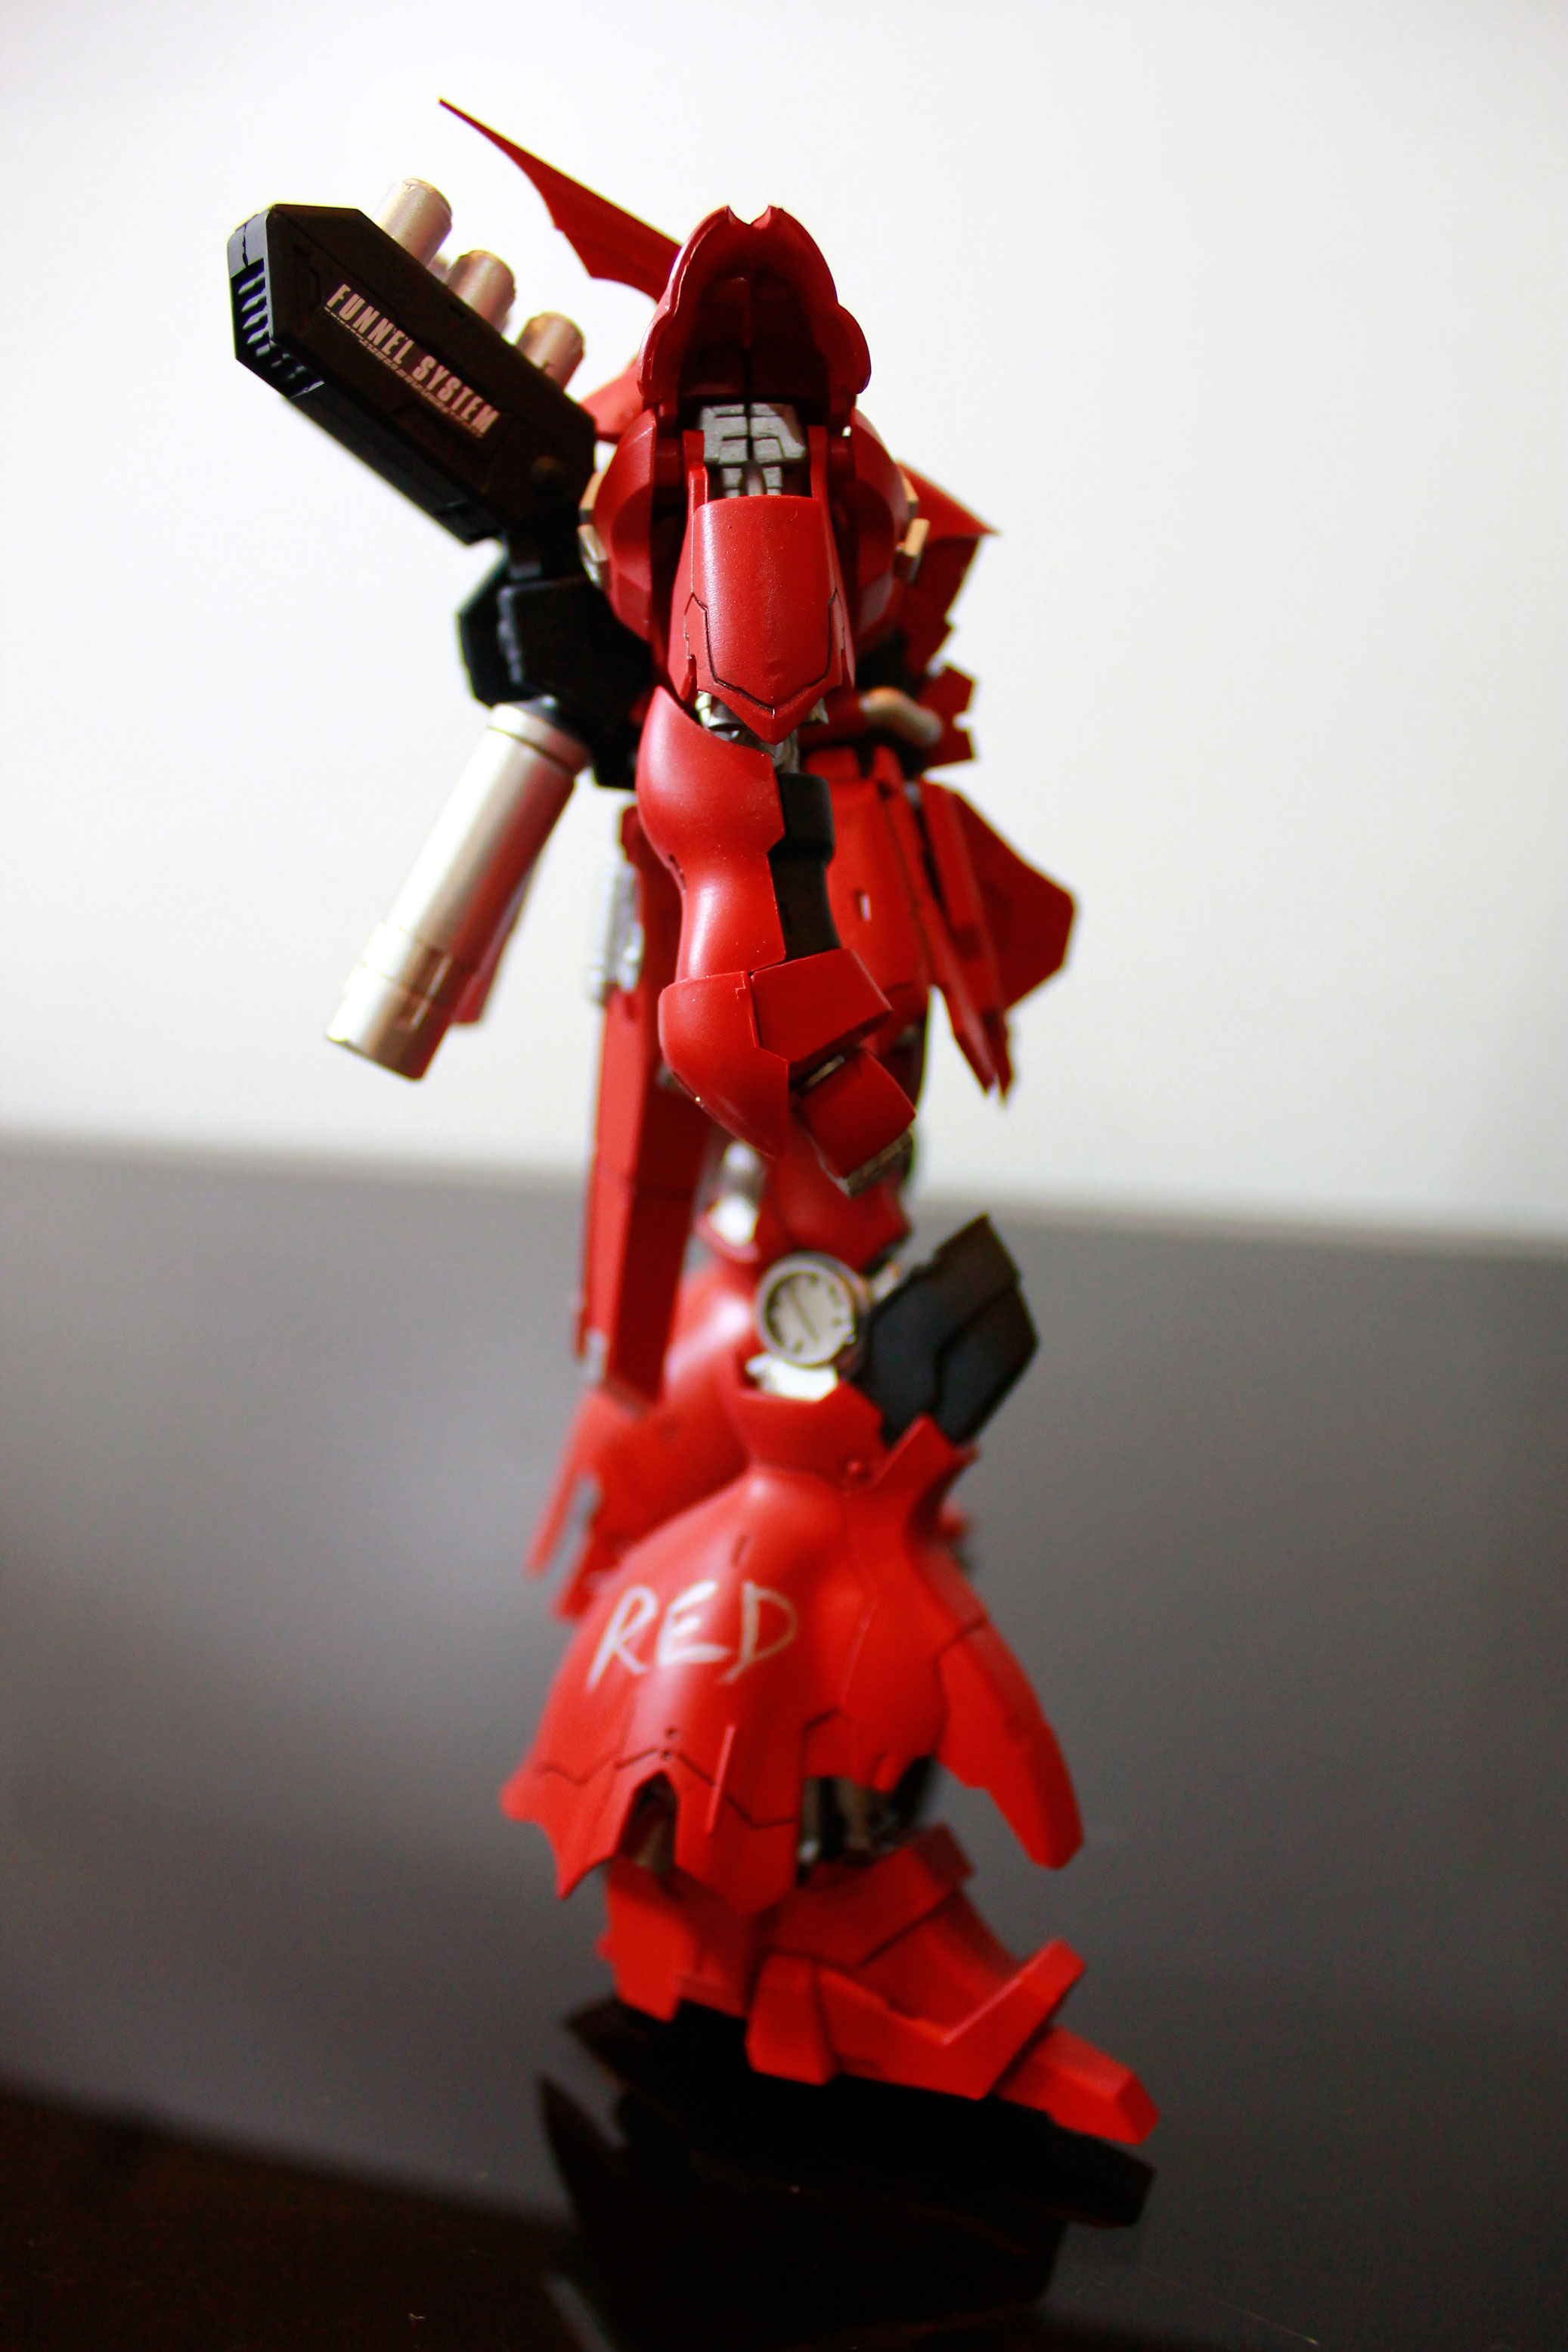 1 144 Hg Sazabi Evo Ver Captain Red Modeled By Akio0504